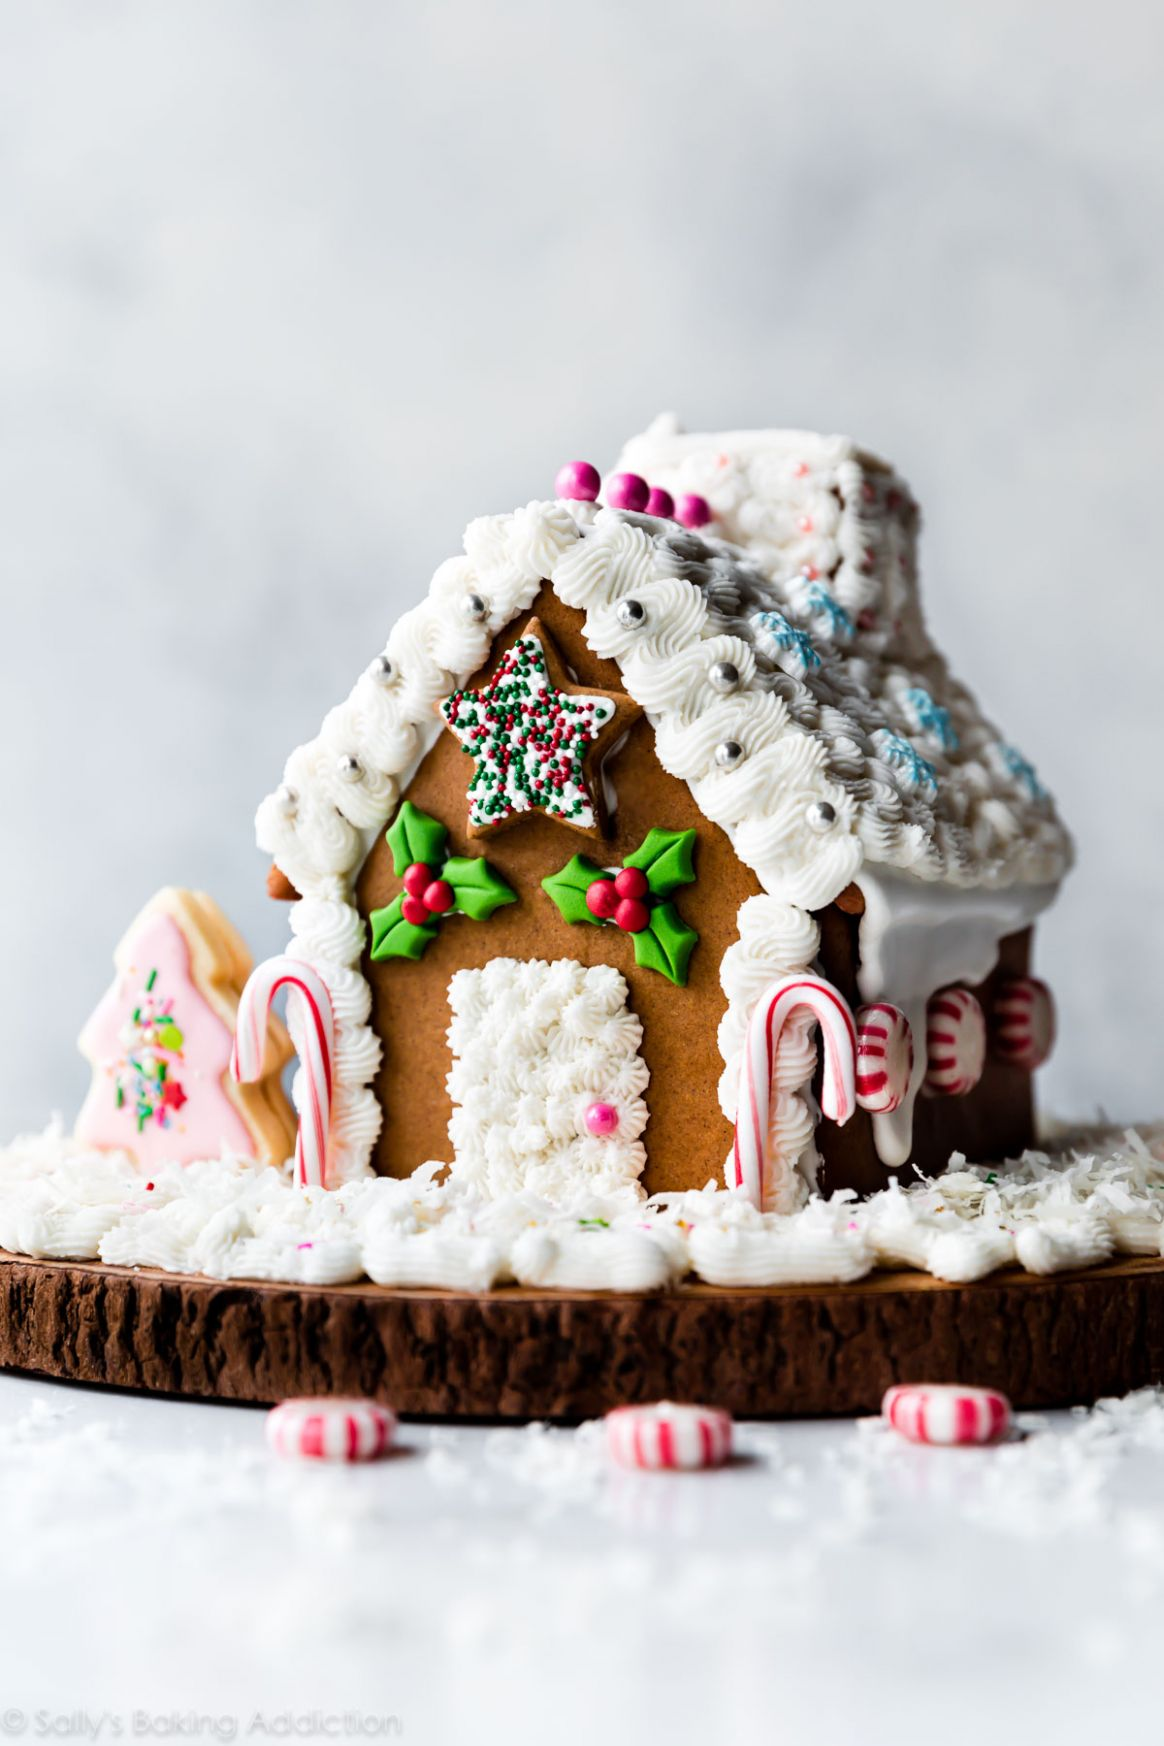 Gingerbread House Recipe (VIDEO) - gingerbread house inspiration